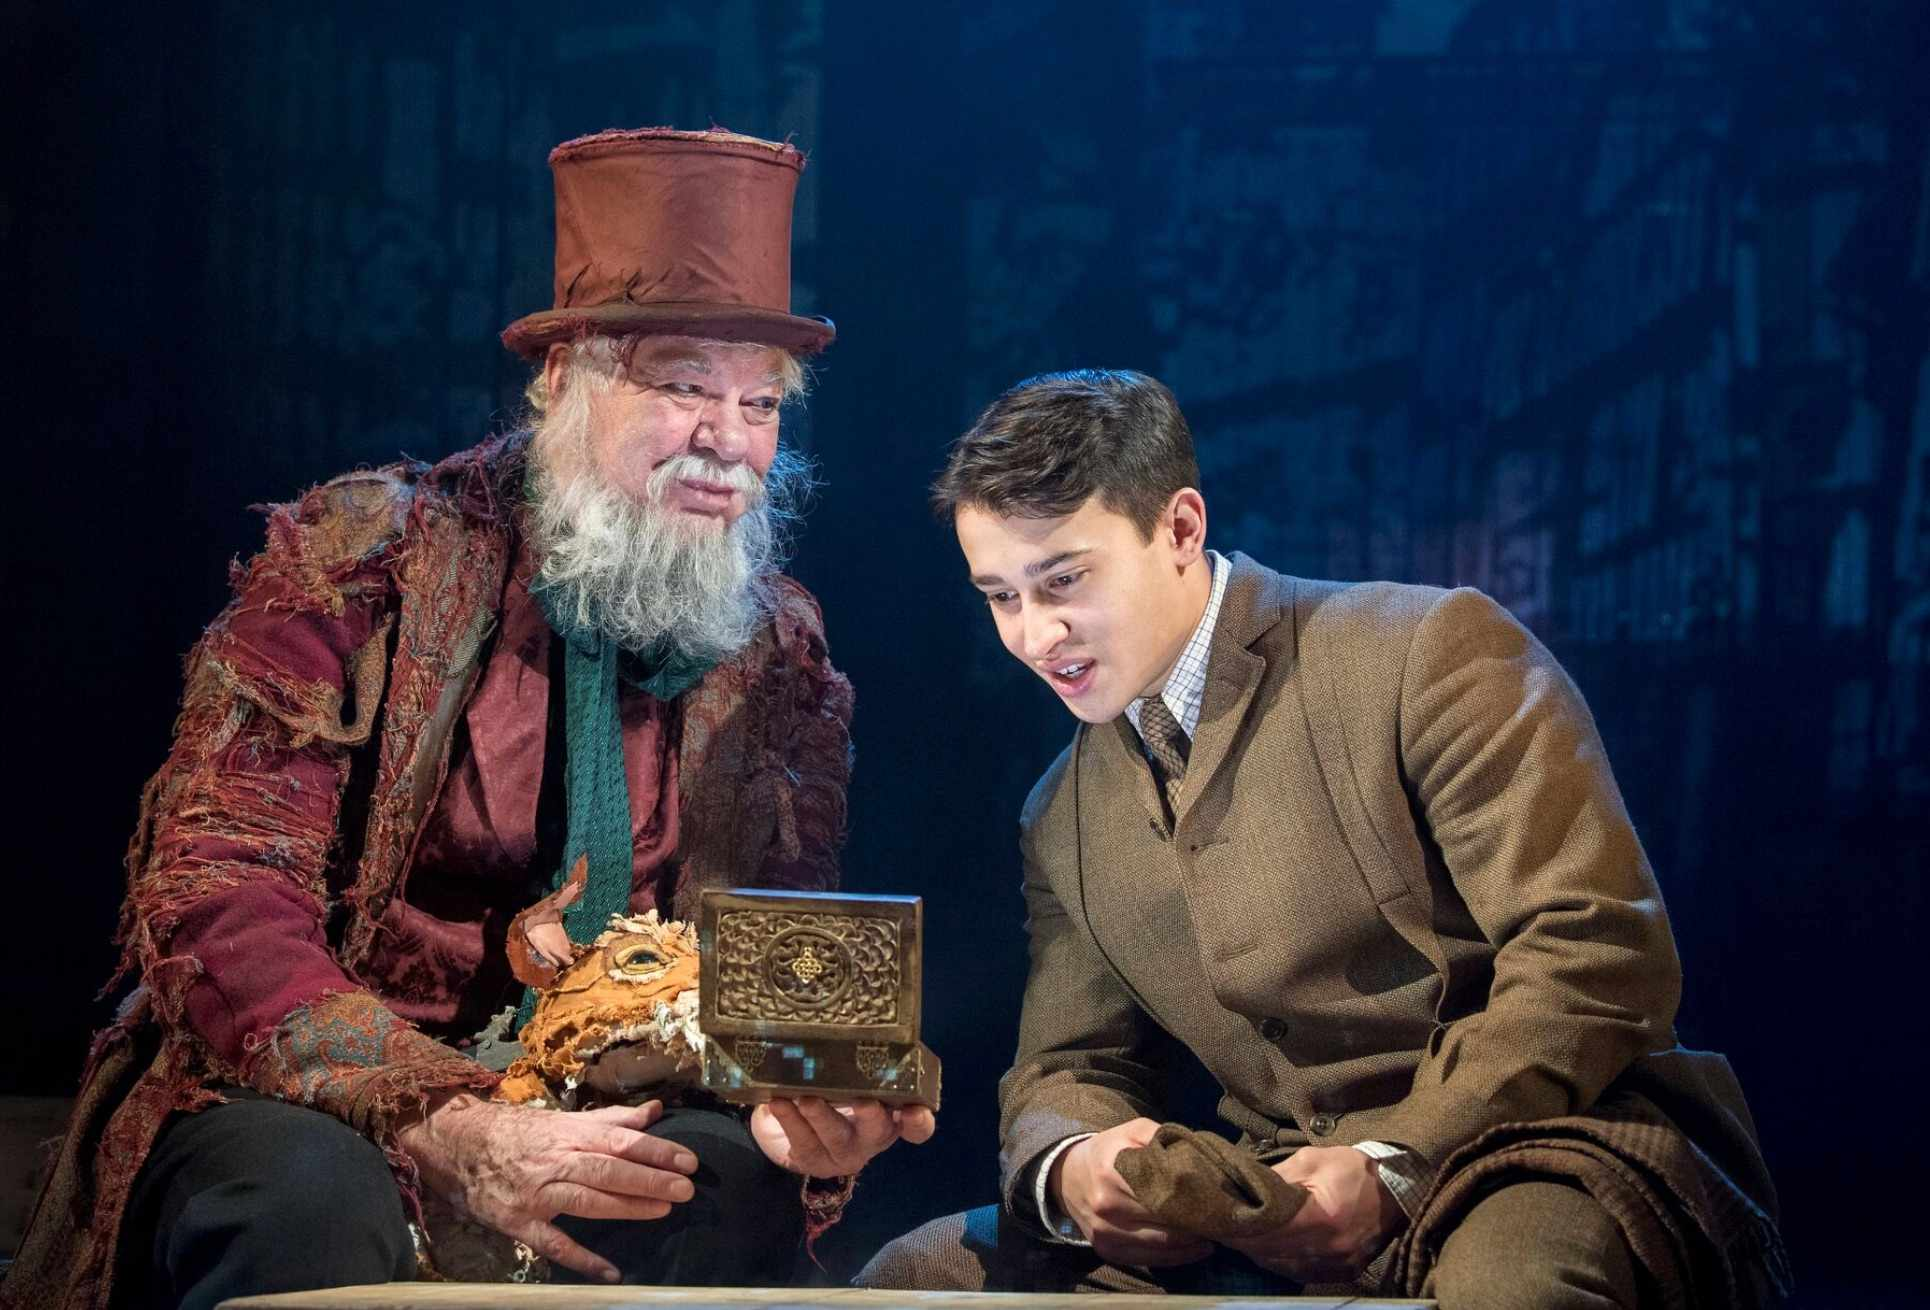 Box of Delights, Matthew Kelly, Publicity shot, BD